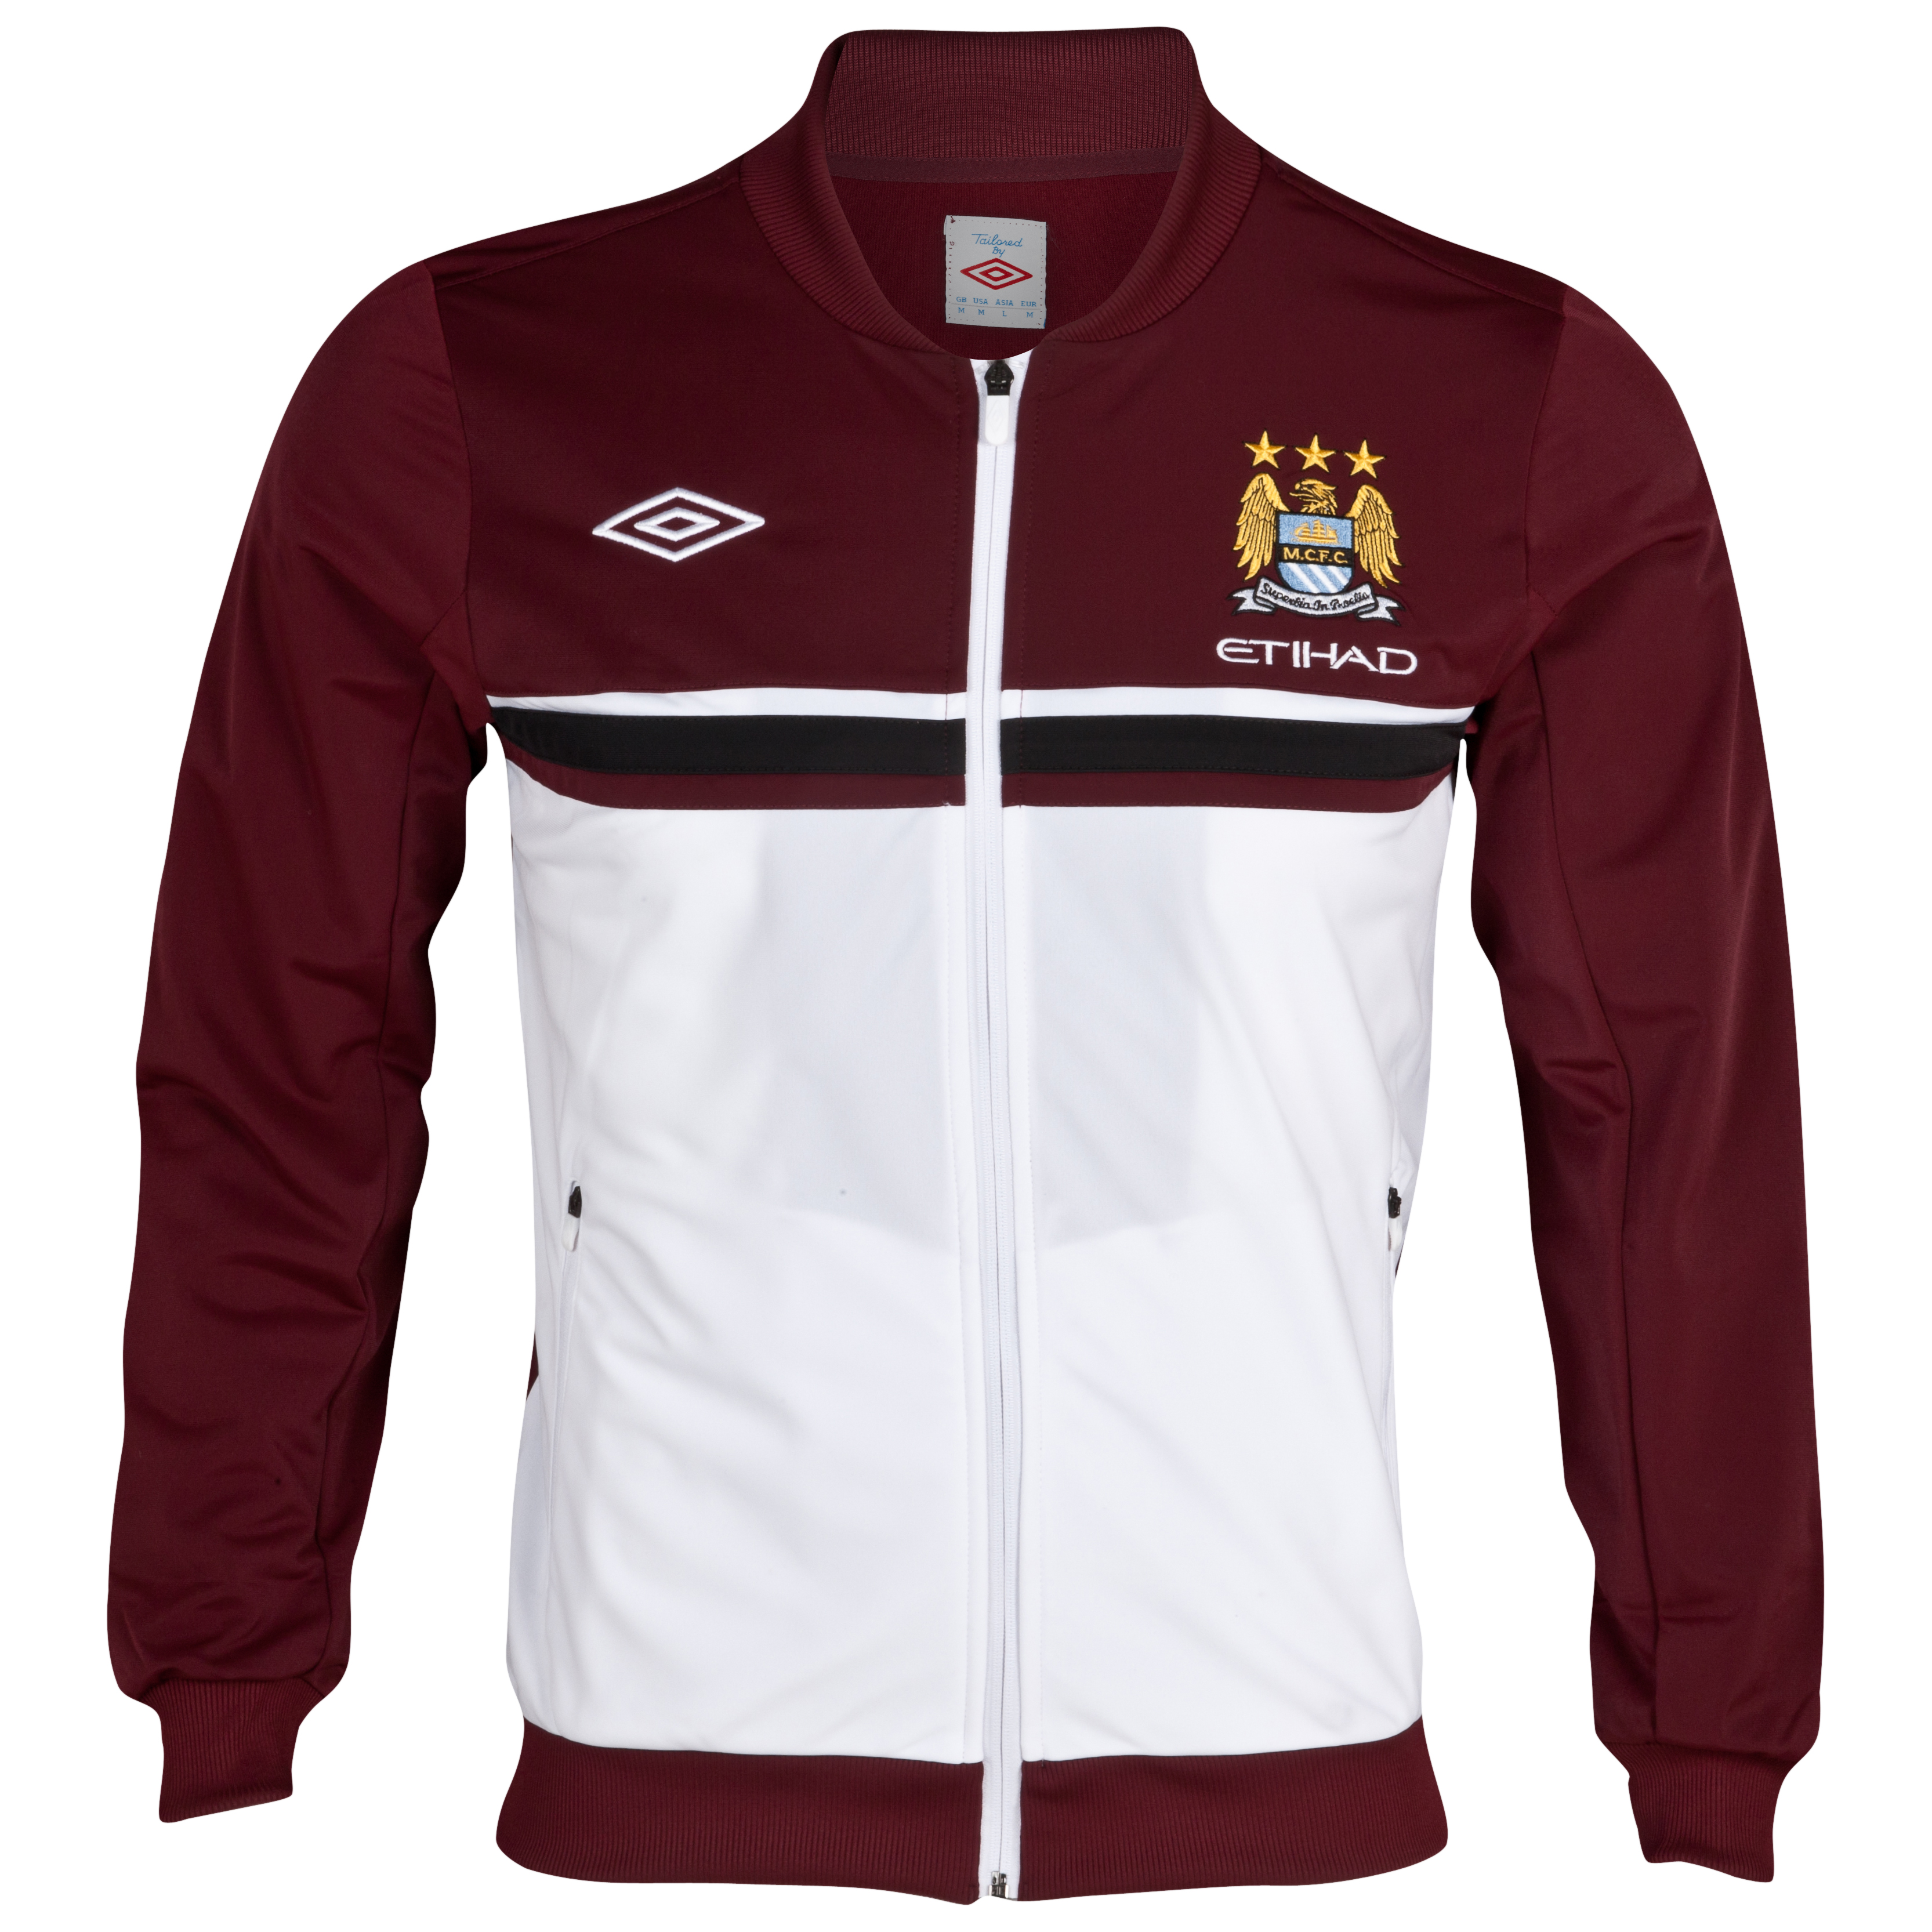 Manchester City Knitted Jacket - White/Maroon/Black